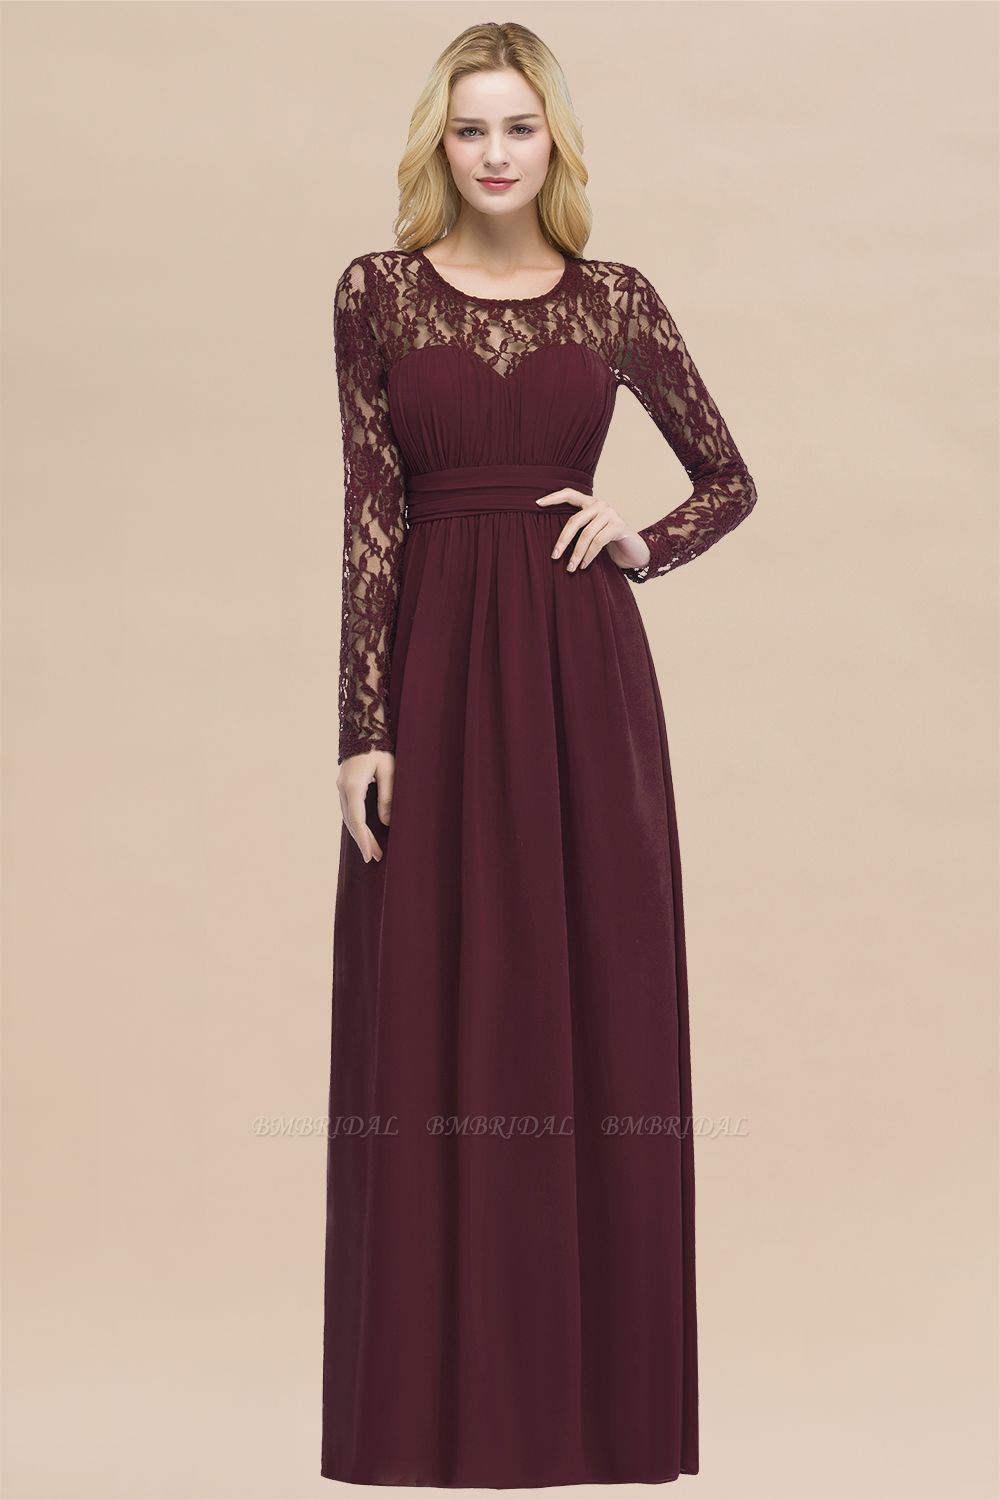 Elegant Lace Burgundy Bridesmaid Dresses Online with Long Sleeves